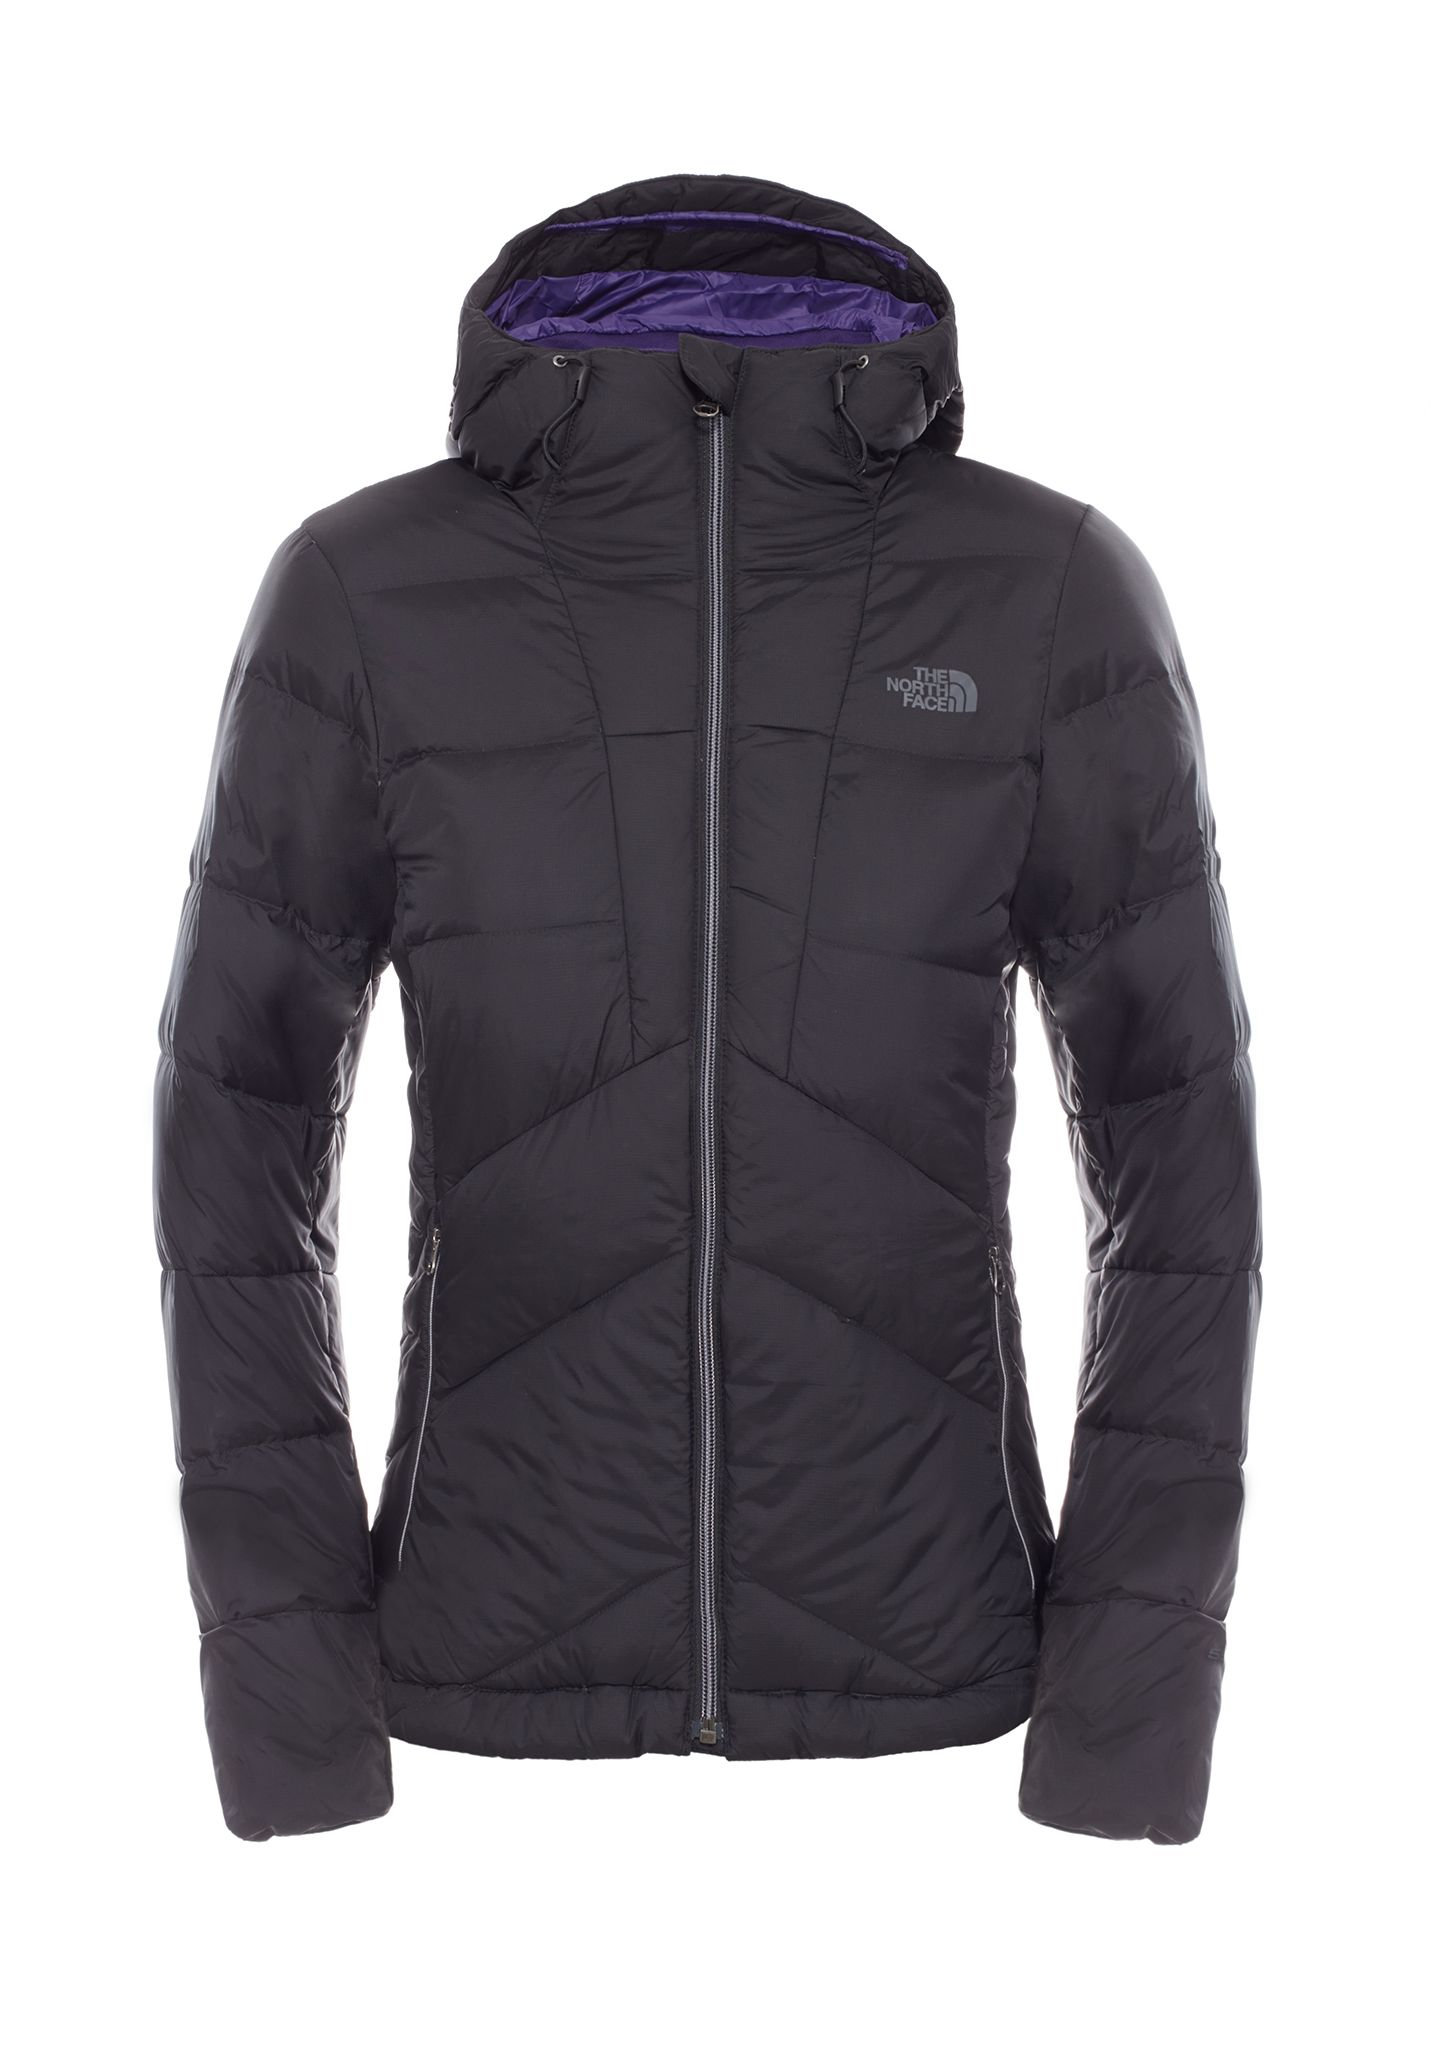 Leather jacket hoi an - The North Face Floccus Down Snowboard Jacket For Women Black The North Face Floccus Down Snowboard Jacket For Women Black